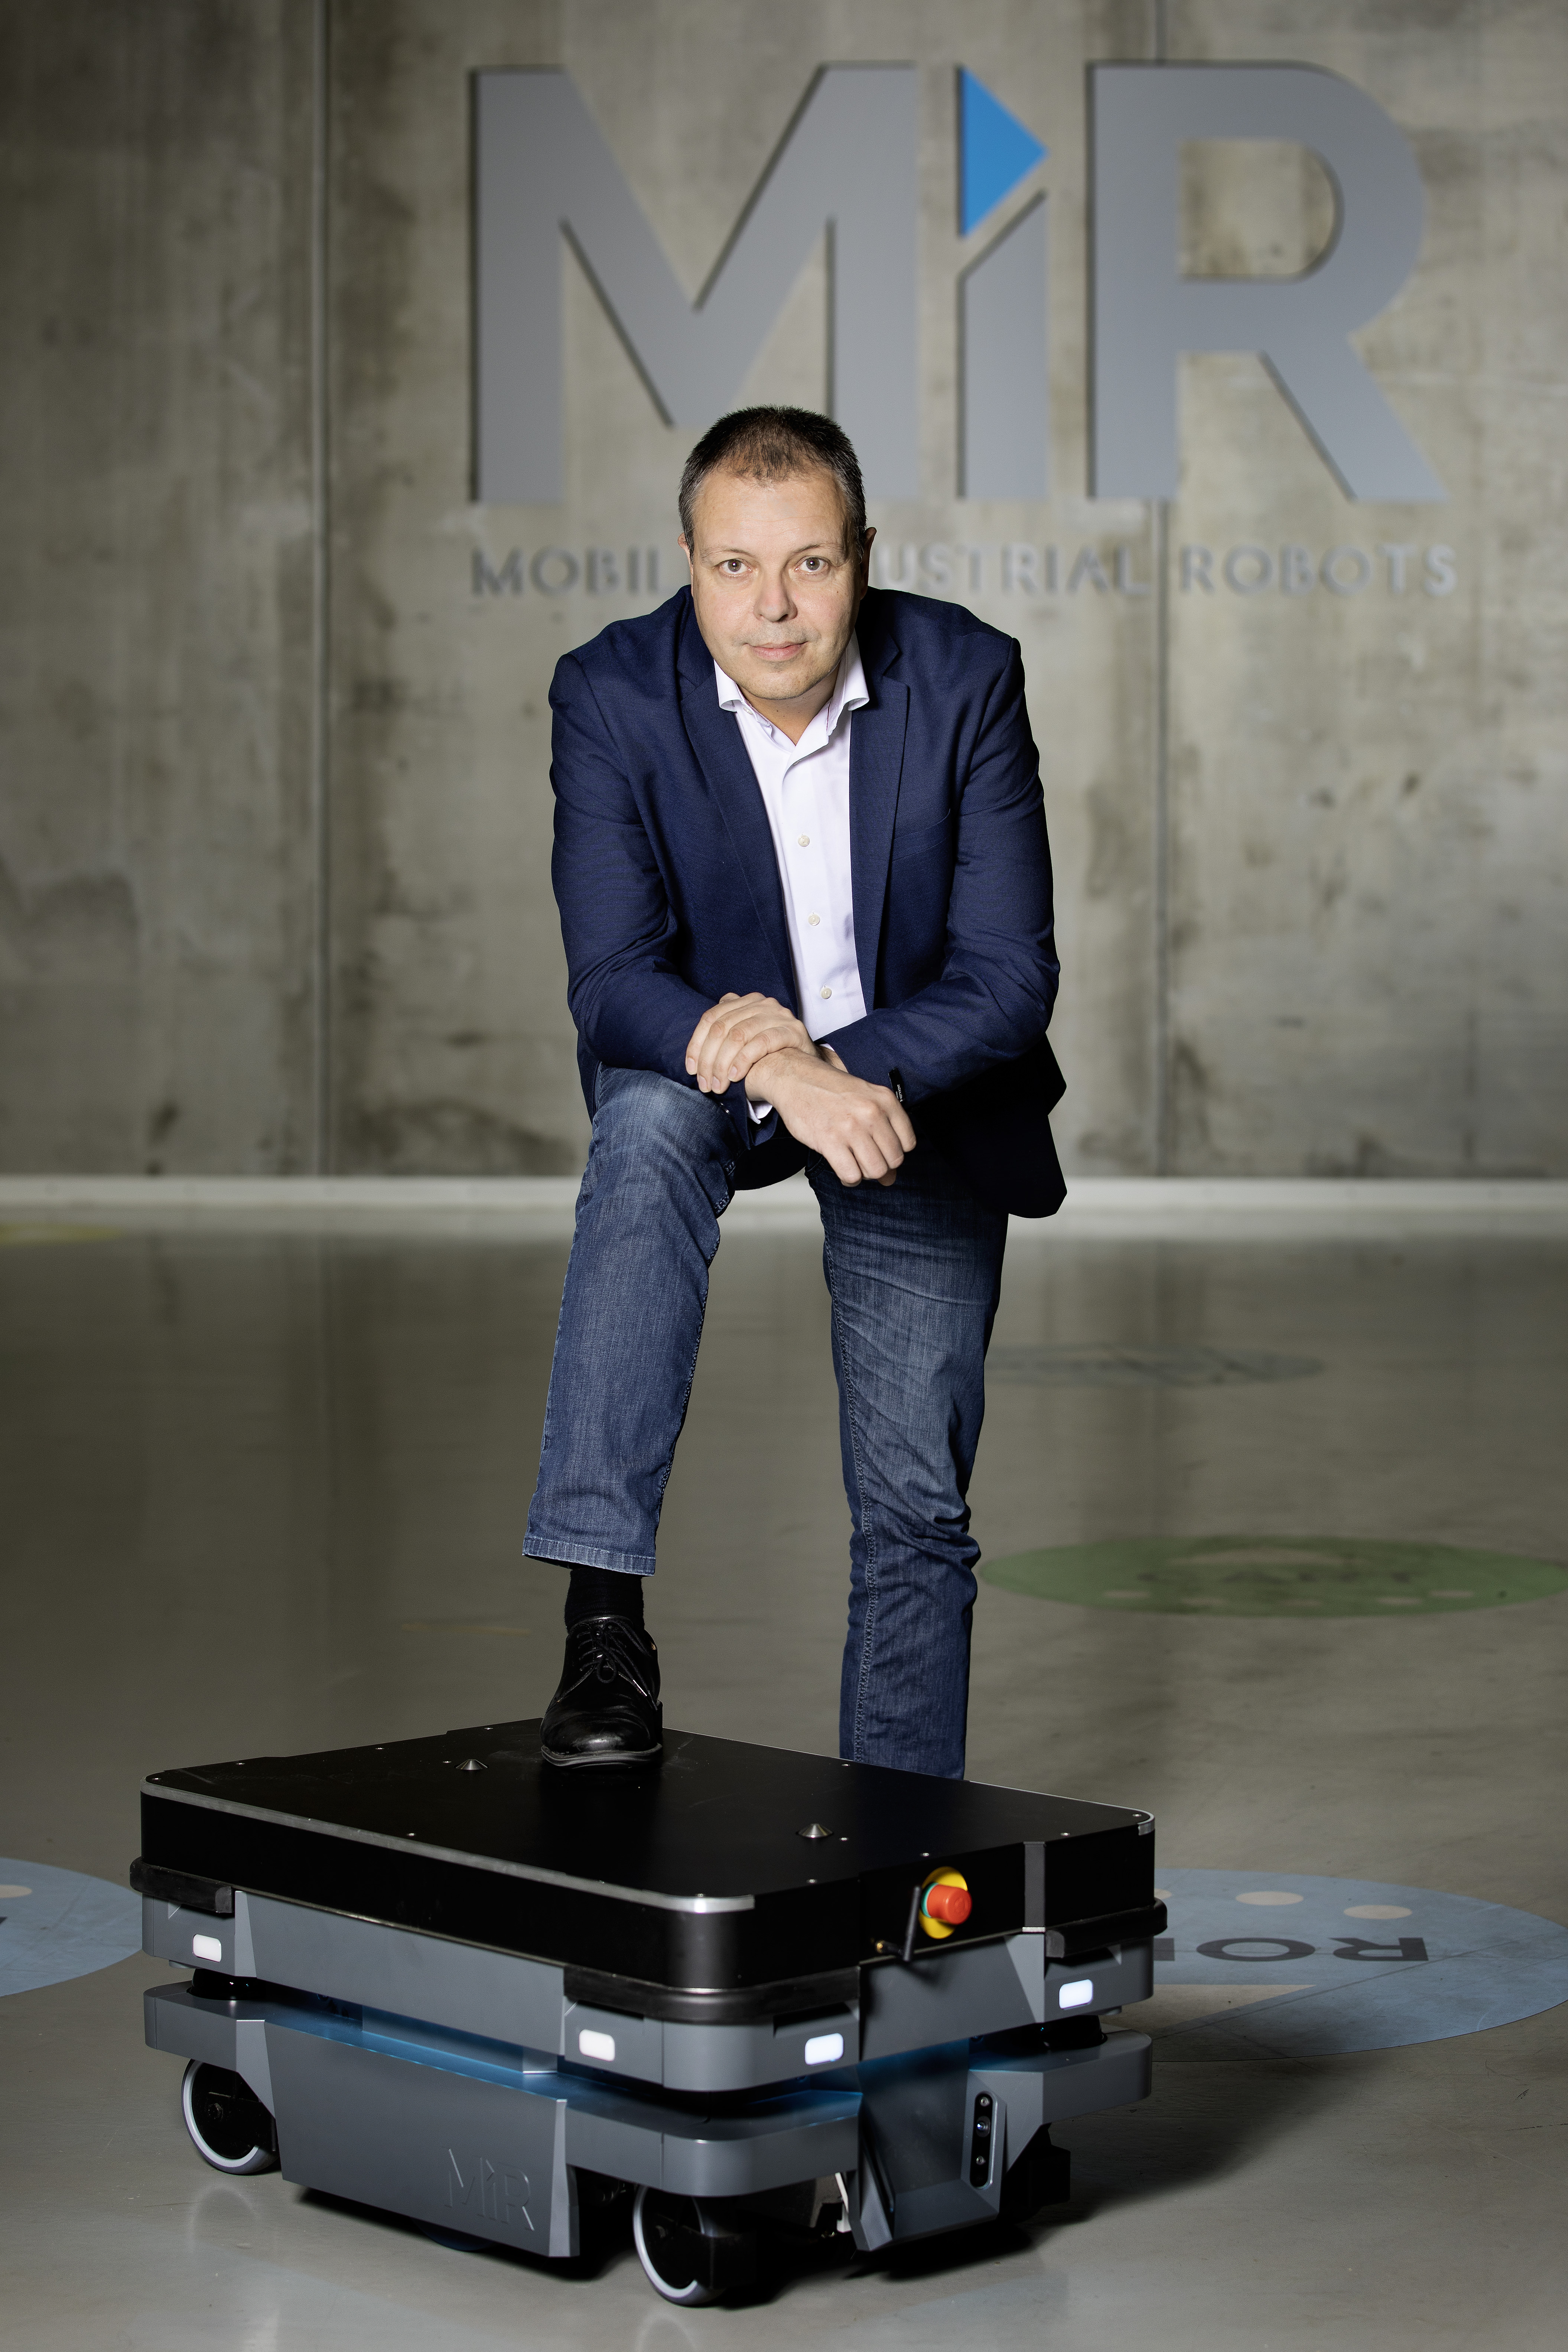 Søren Nielsen, MiR CEO, surrounded by the autonomous robots manufactured by Mobile Industrial Robots.